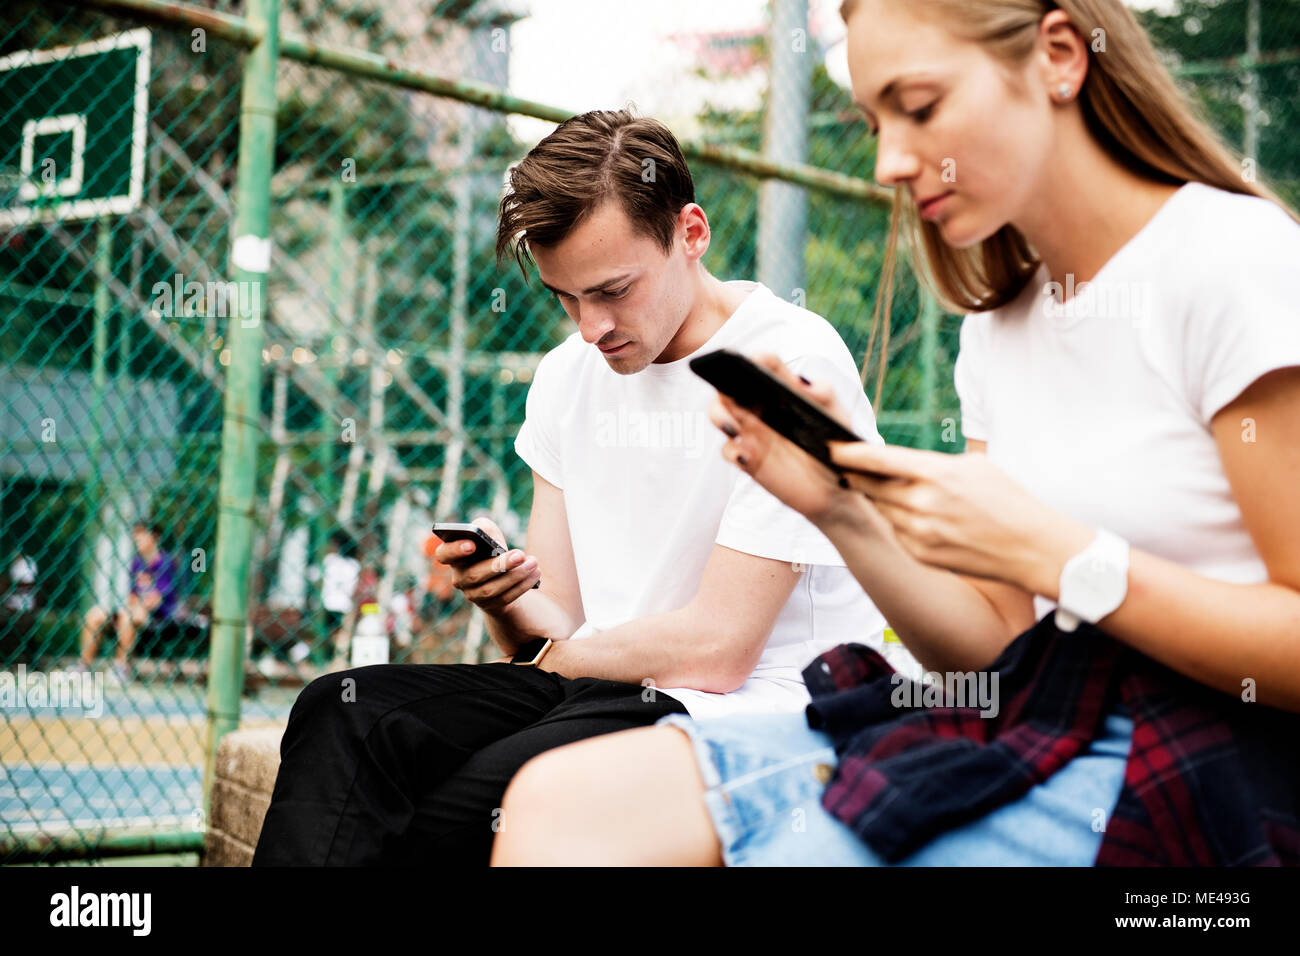 Expressionless young couple in the park using smartphones with no social interactions addiction concept - Stock Image